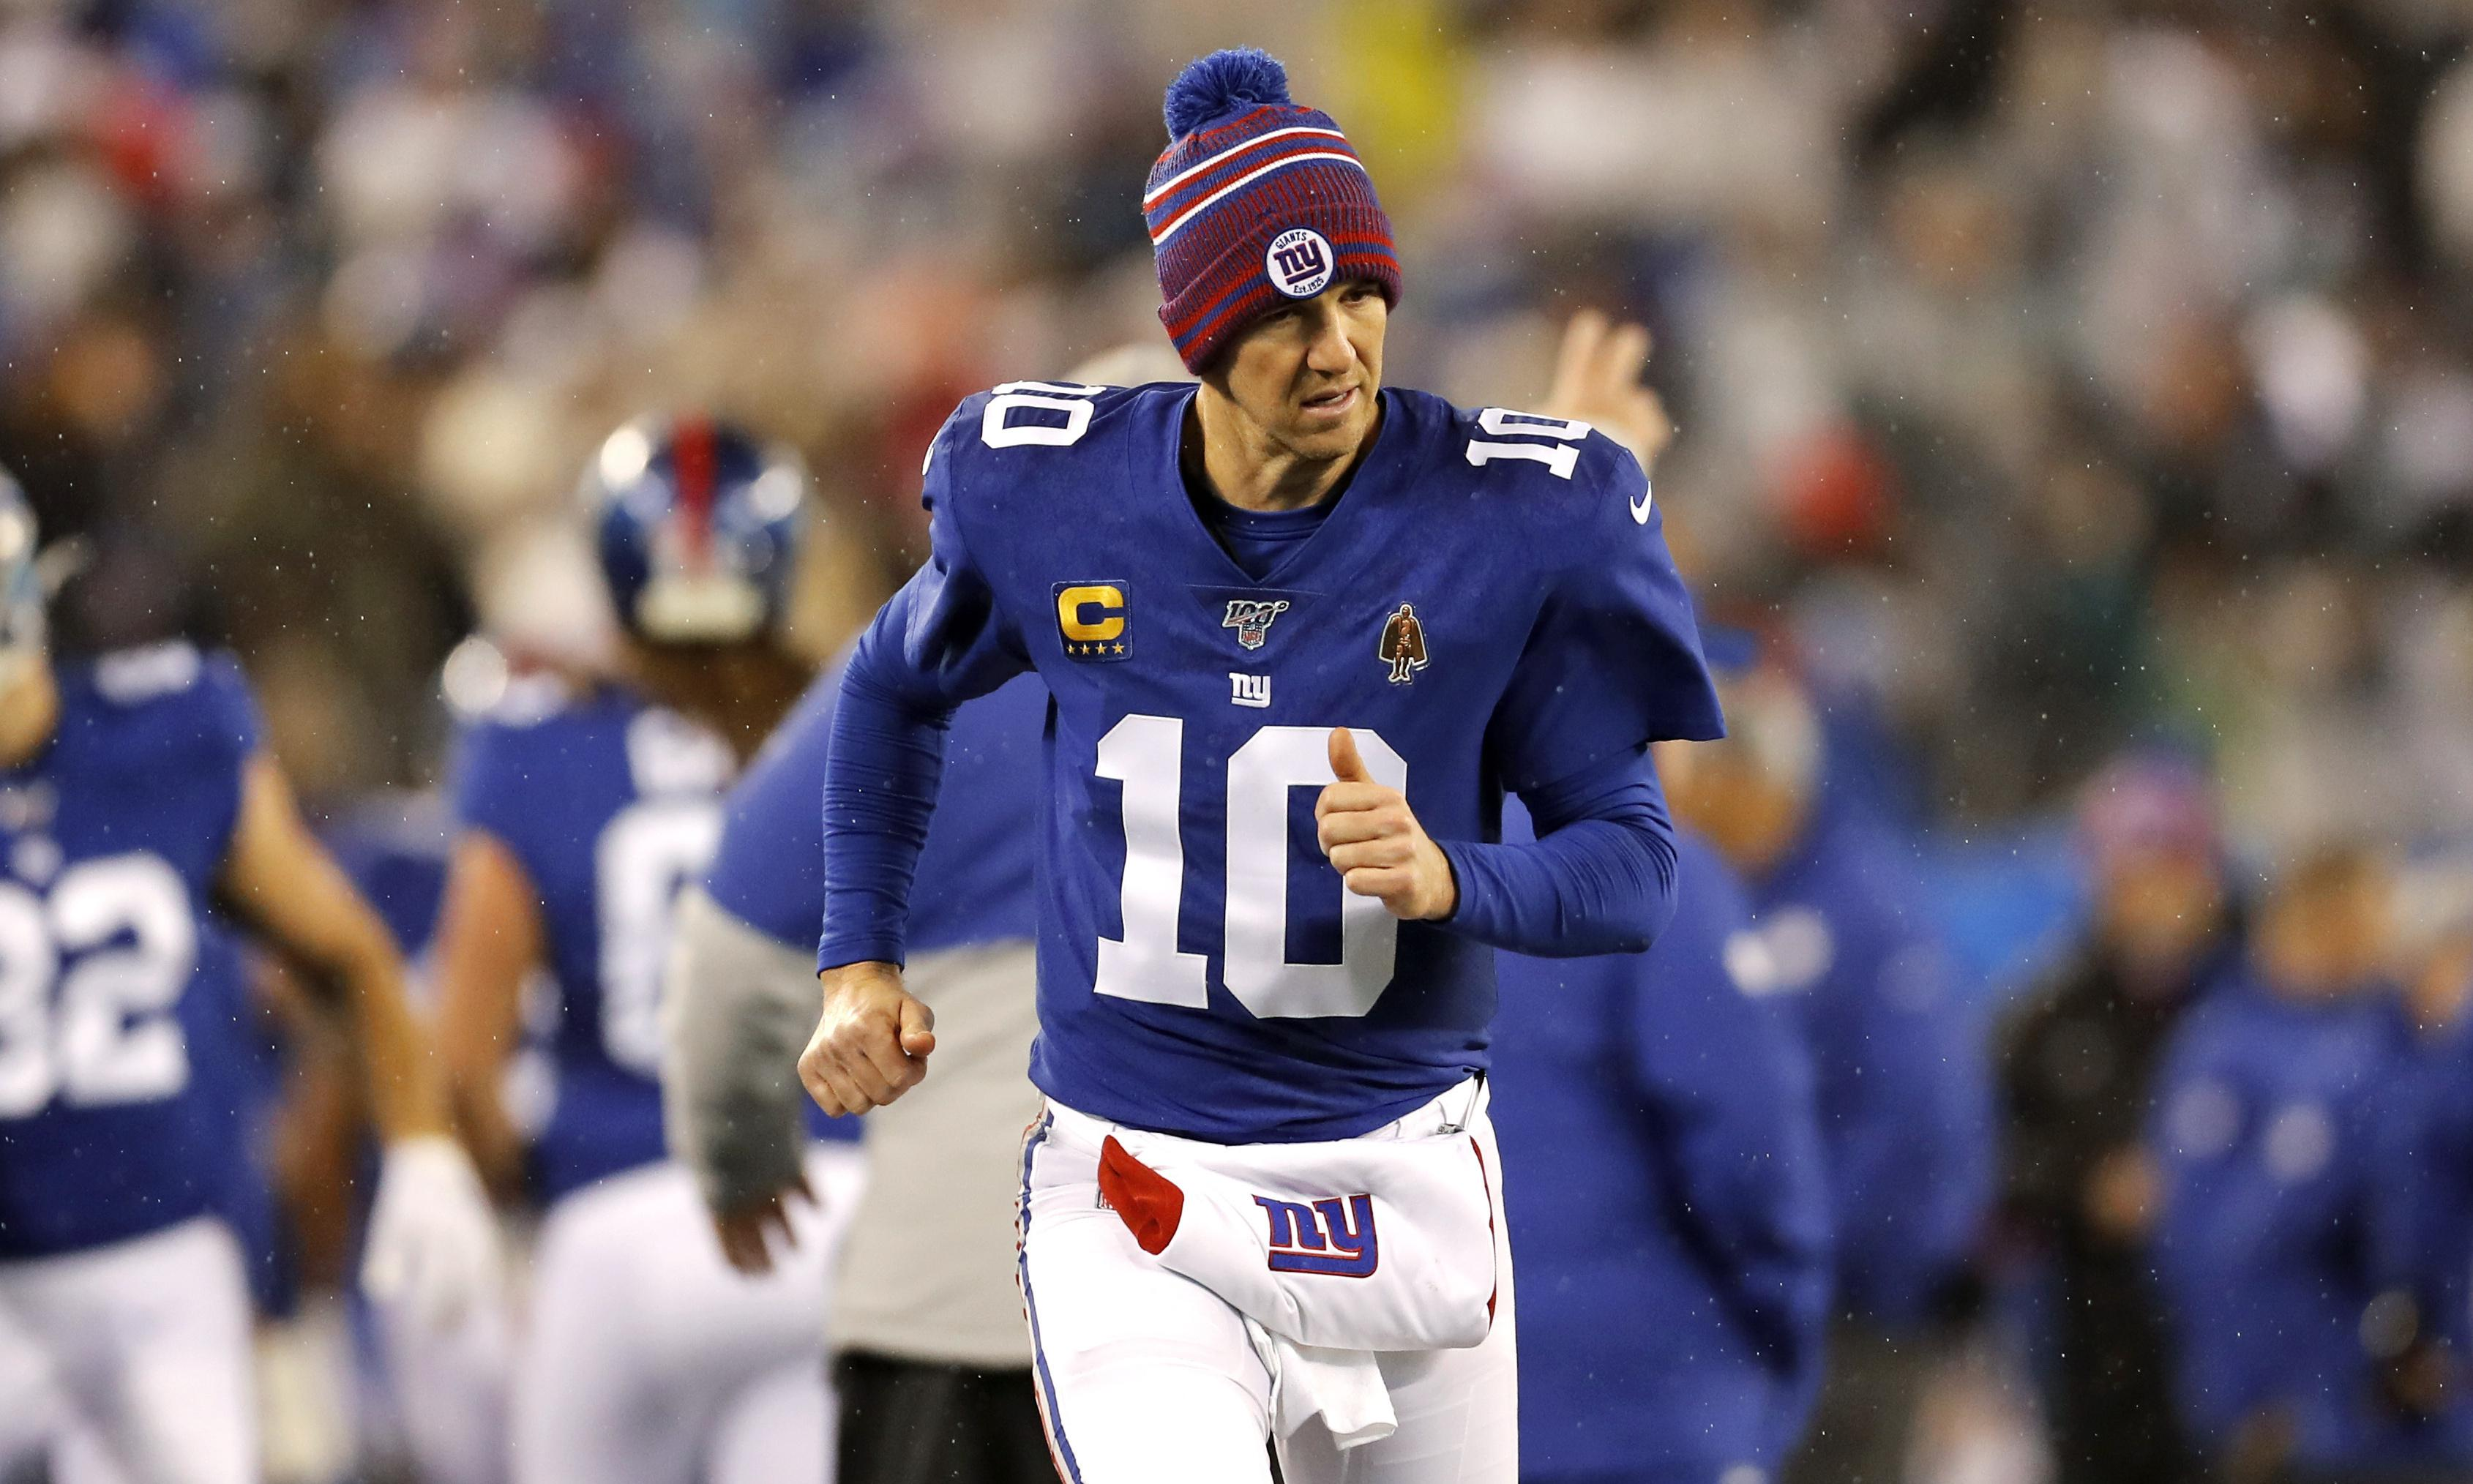 New York Giants icon Eli Manning set to retire after 16 NFL seasons